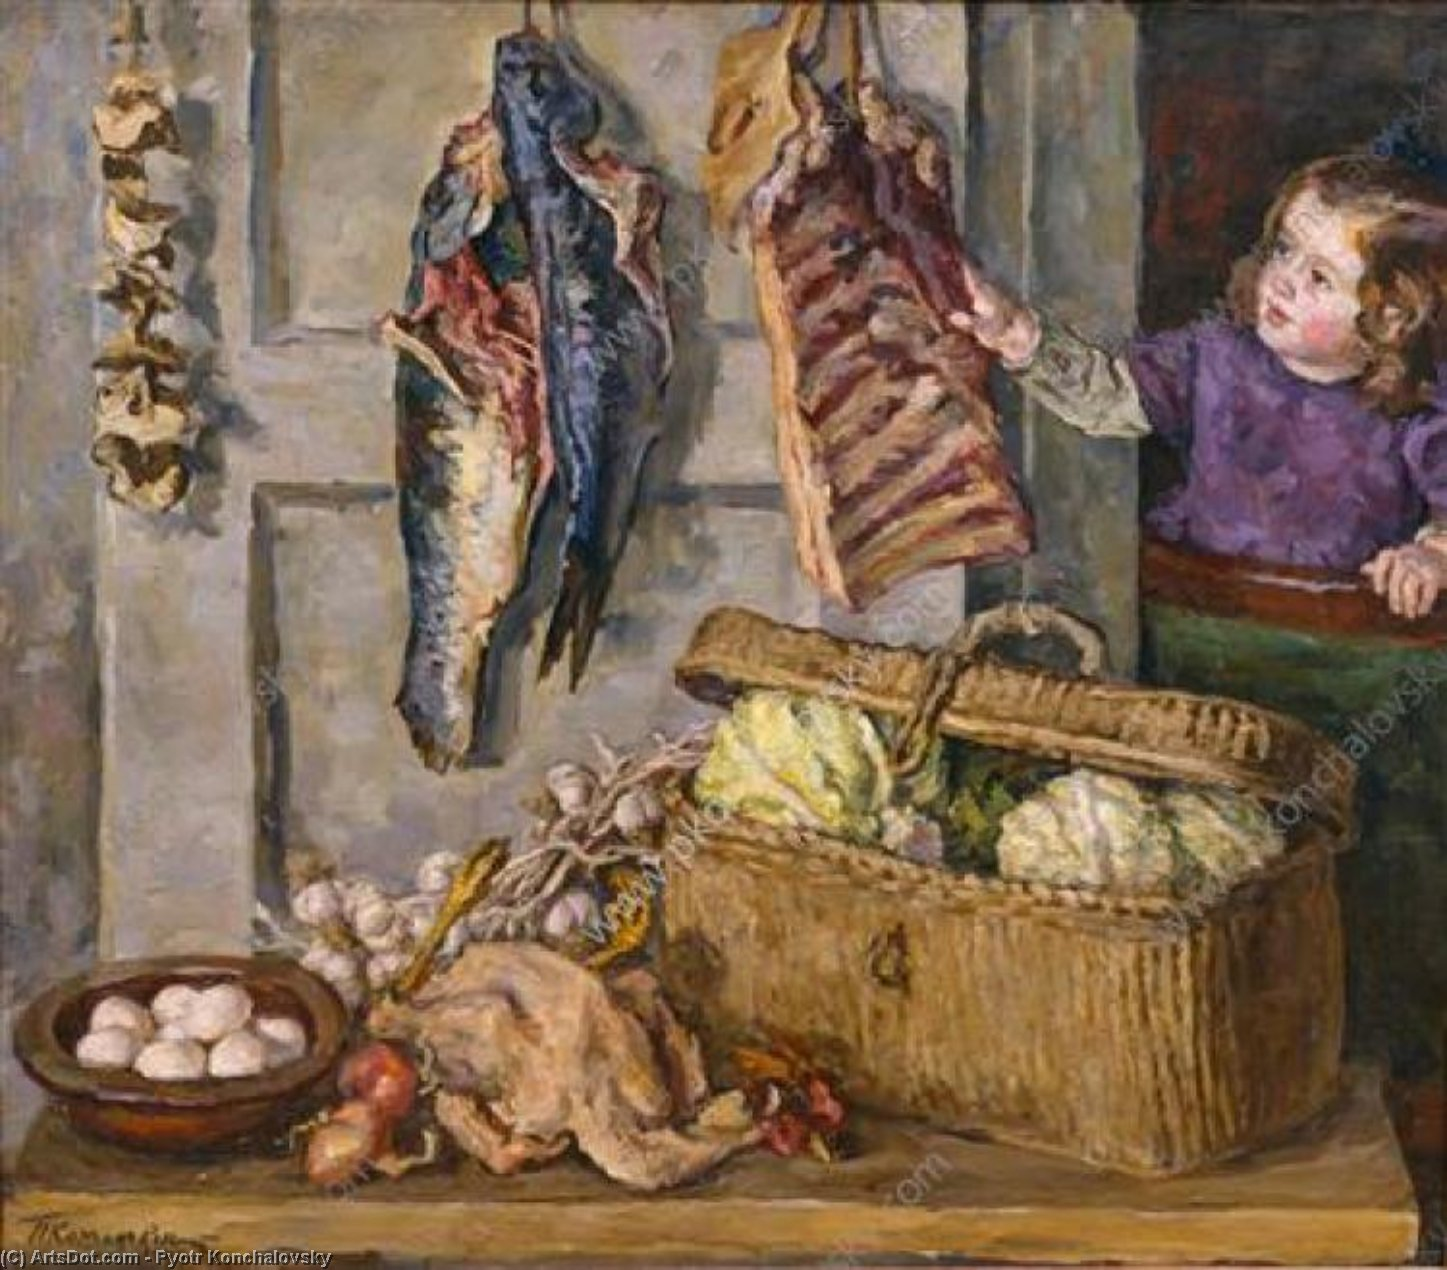 Still Life. Every victuals., 1944 by Pyotr Konchalovsky (1876-1956, Russia)